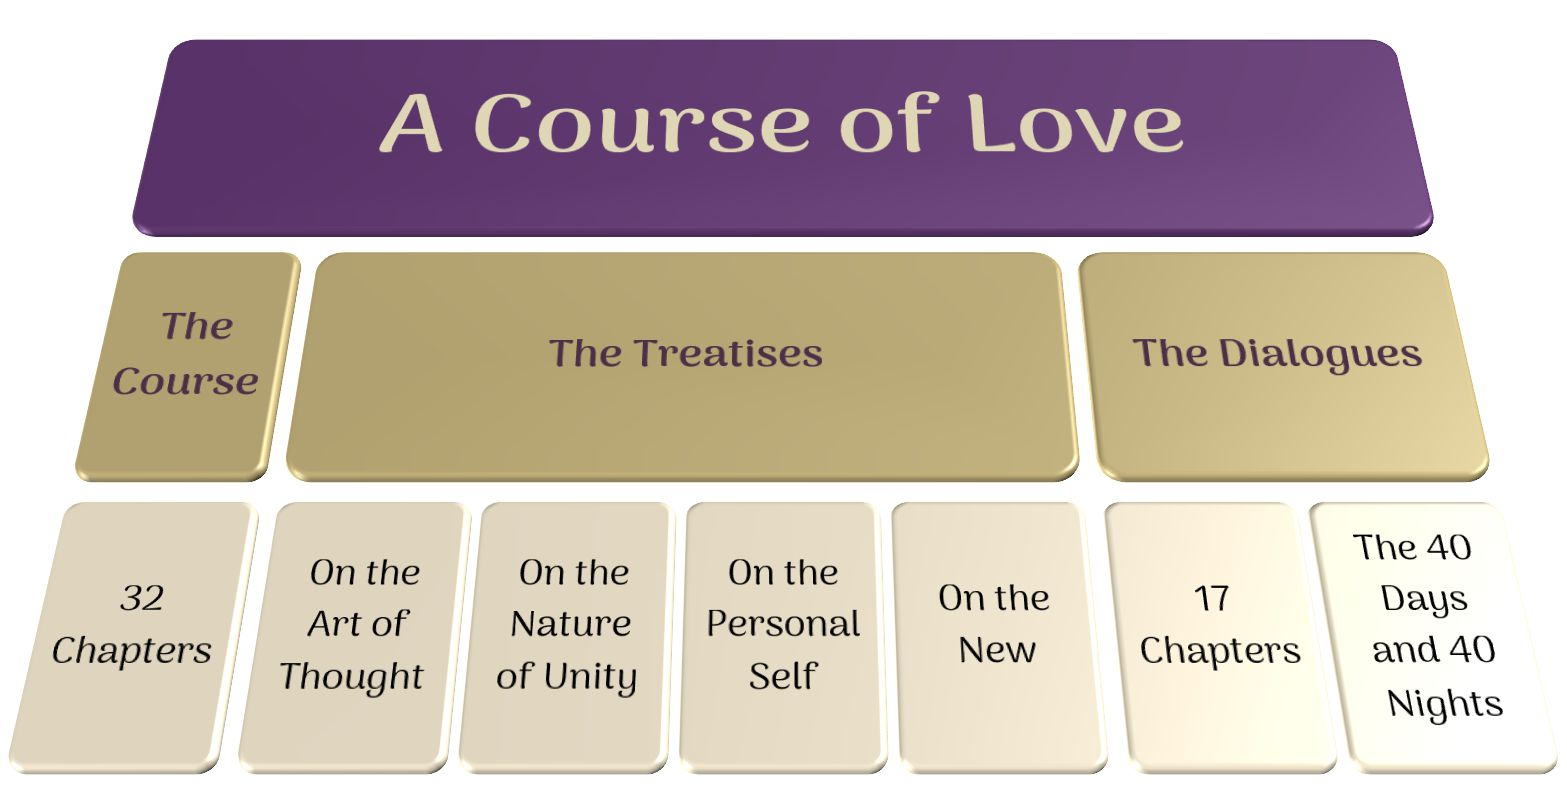 A Course of Love Book Structure